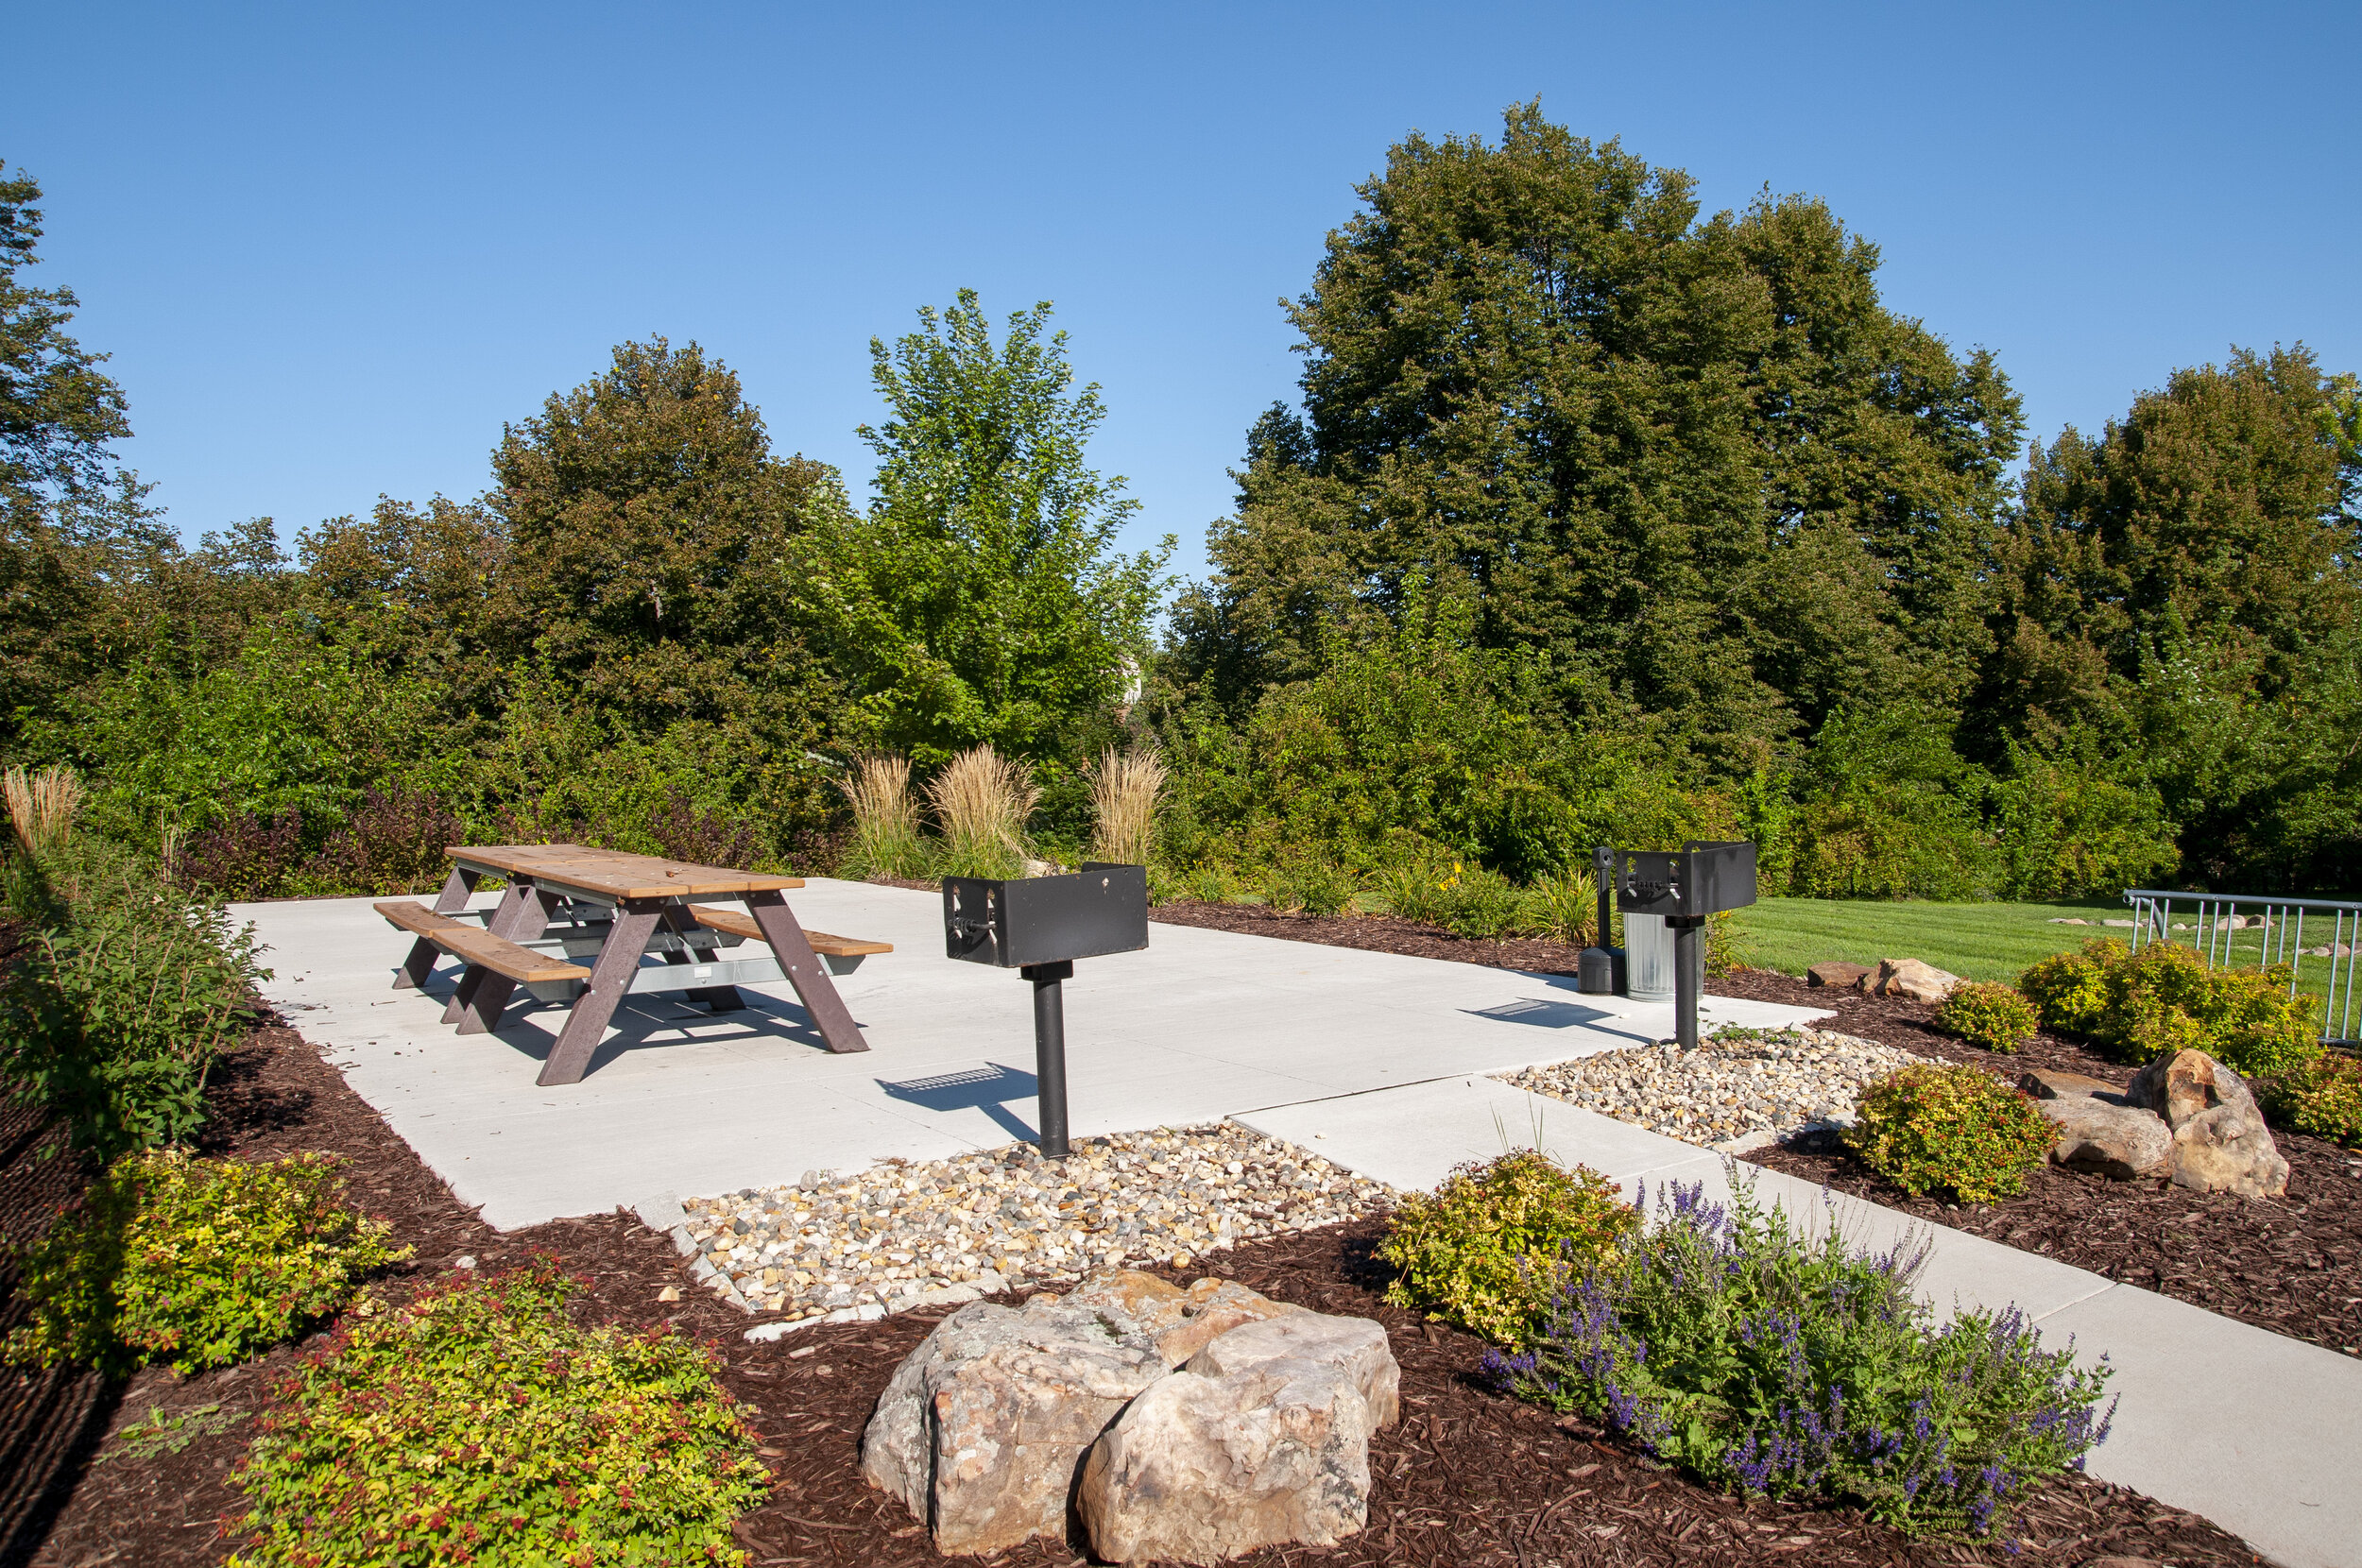 12 Beautifully Landscaped Grounds featuring a Community BBQ Grill _ Picnic Area.jpg